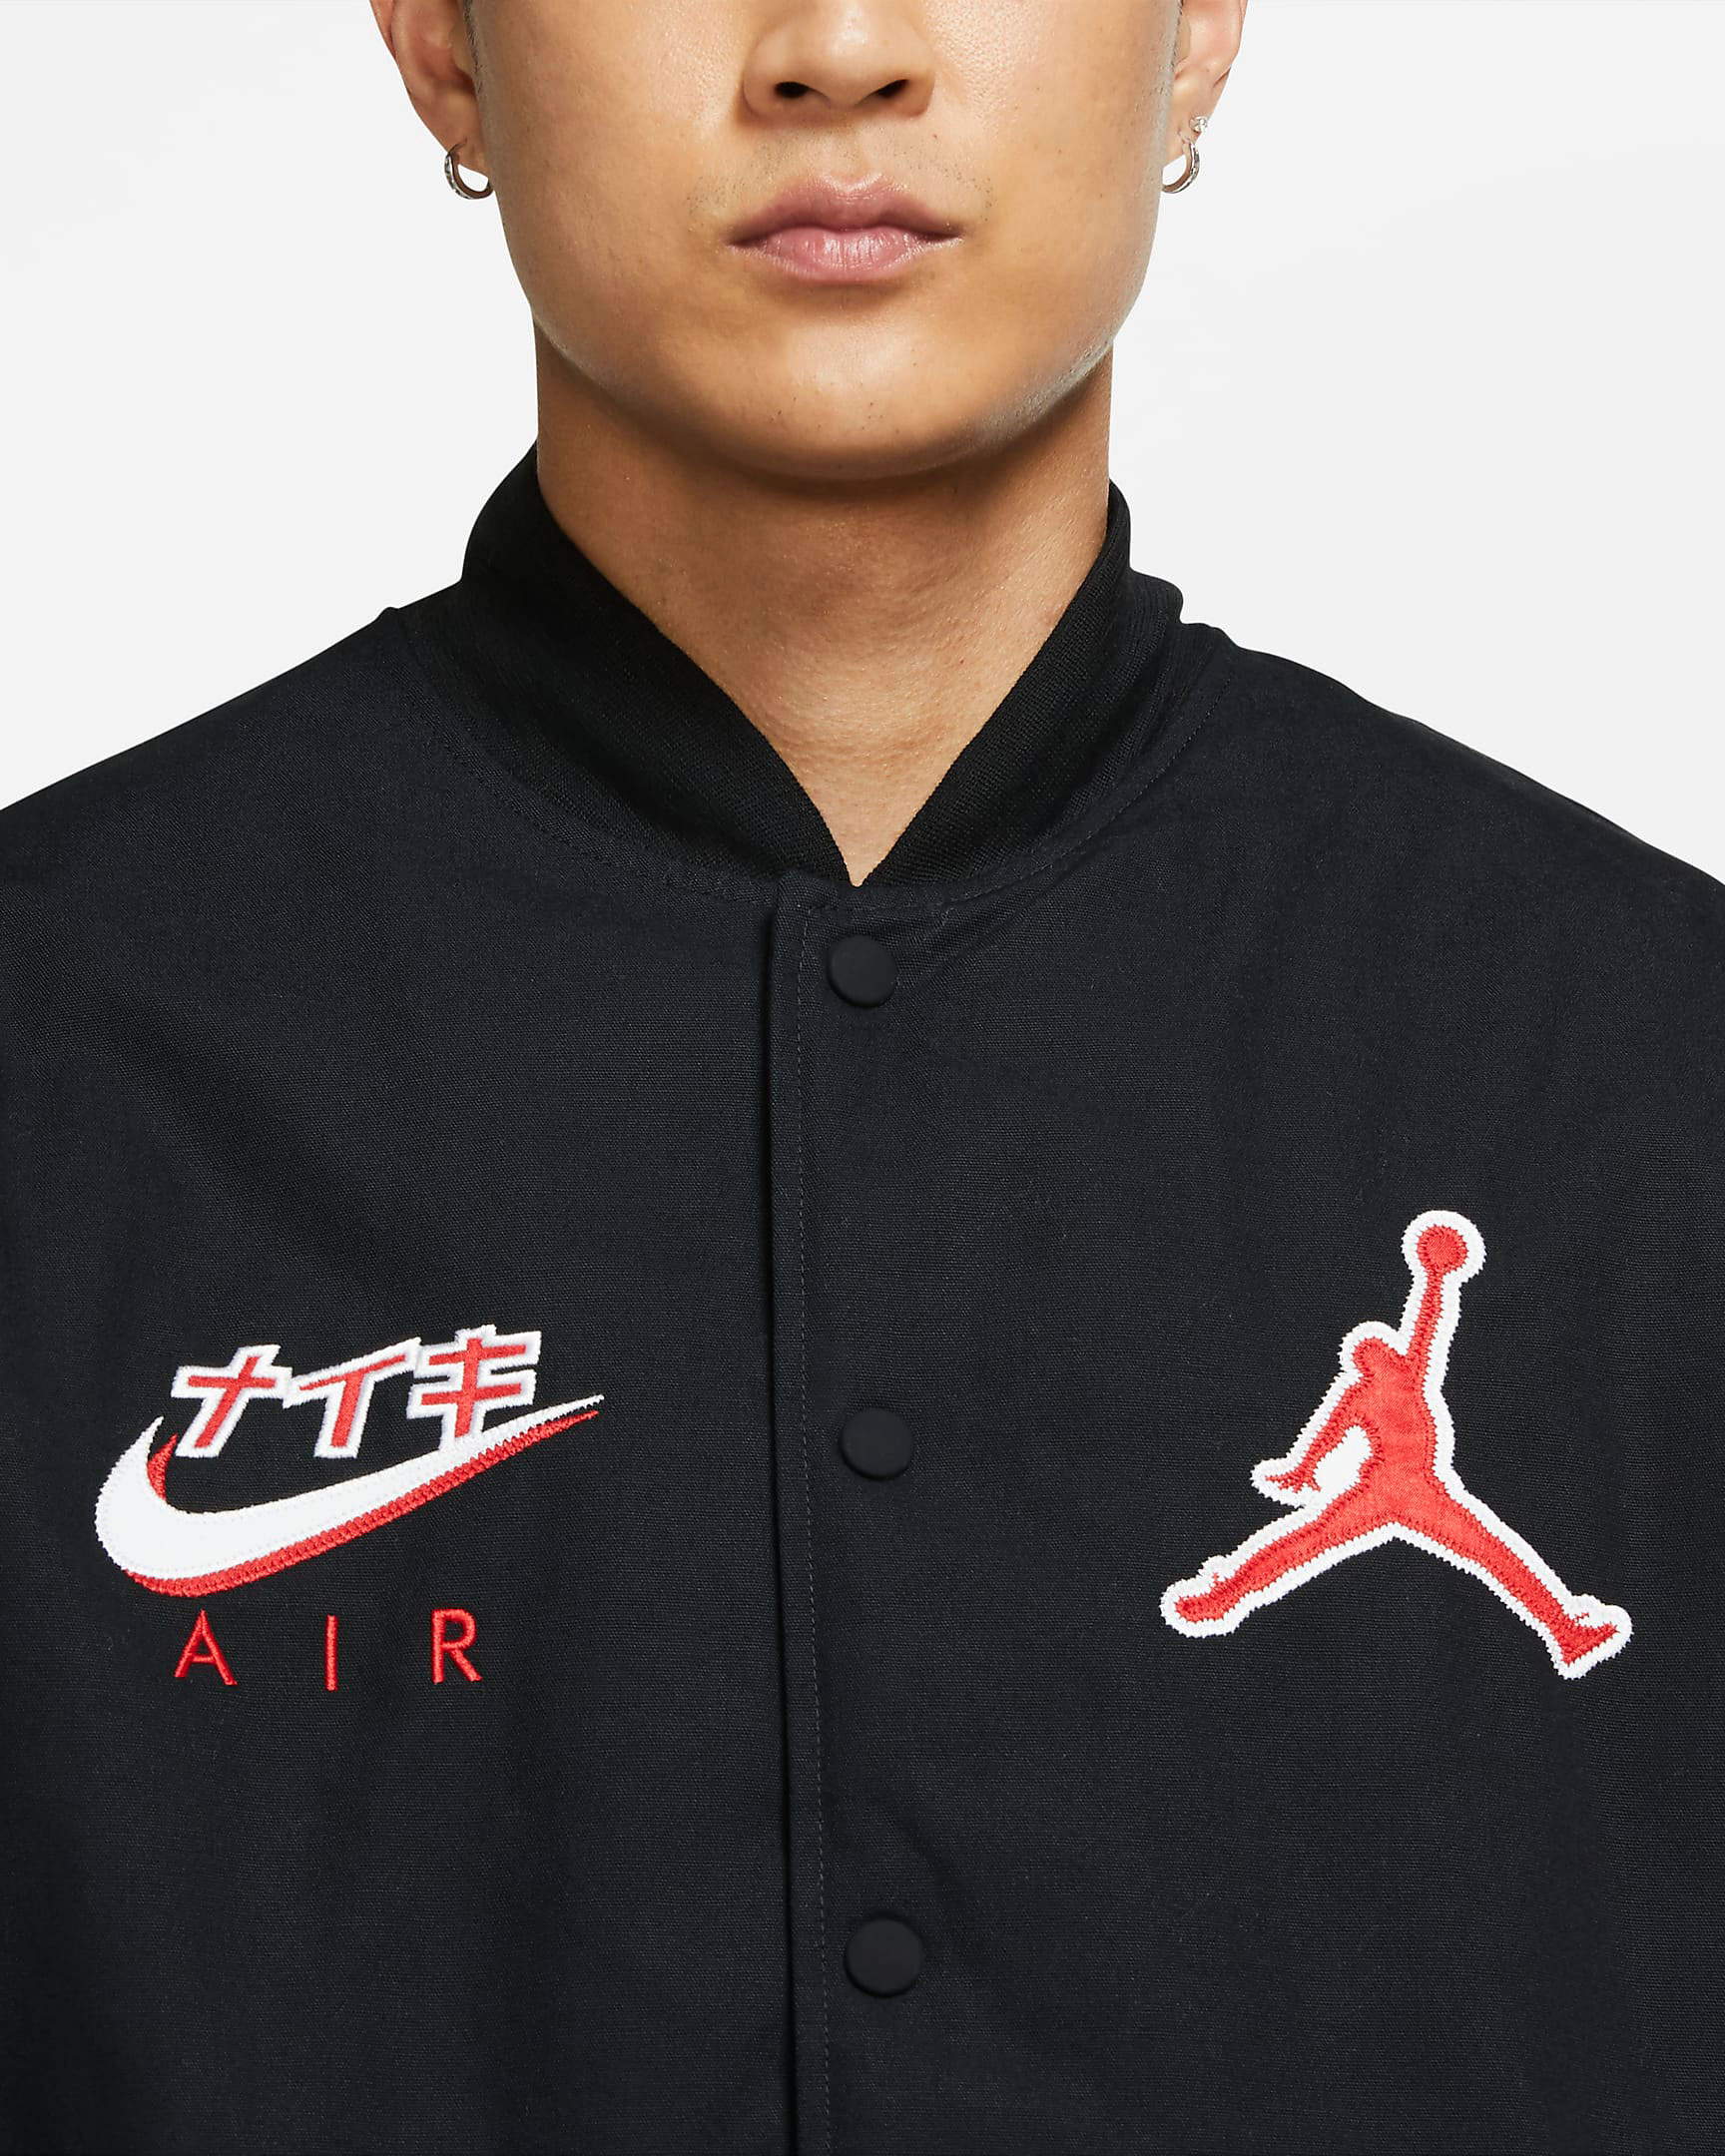 air-jordan-3-denim-fire-red-japan-jacket-3